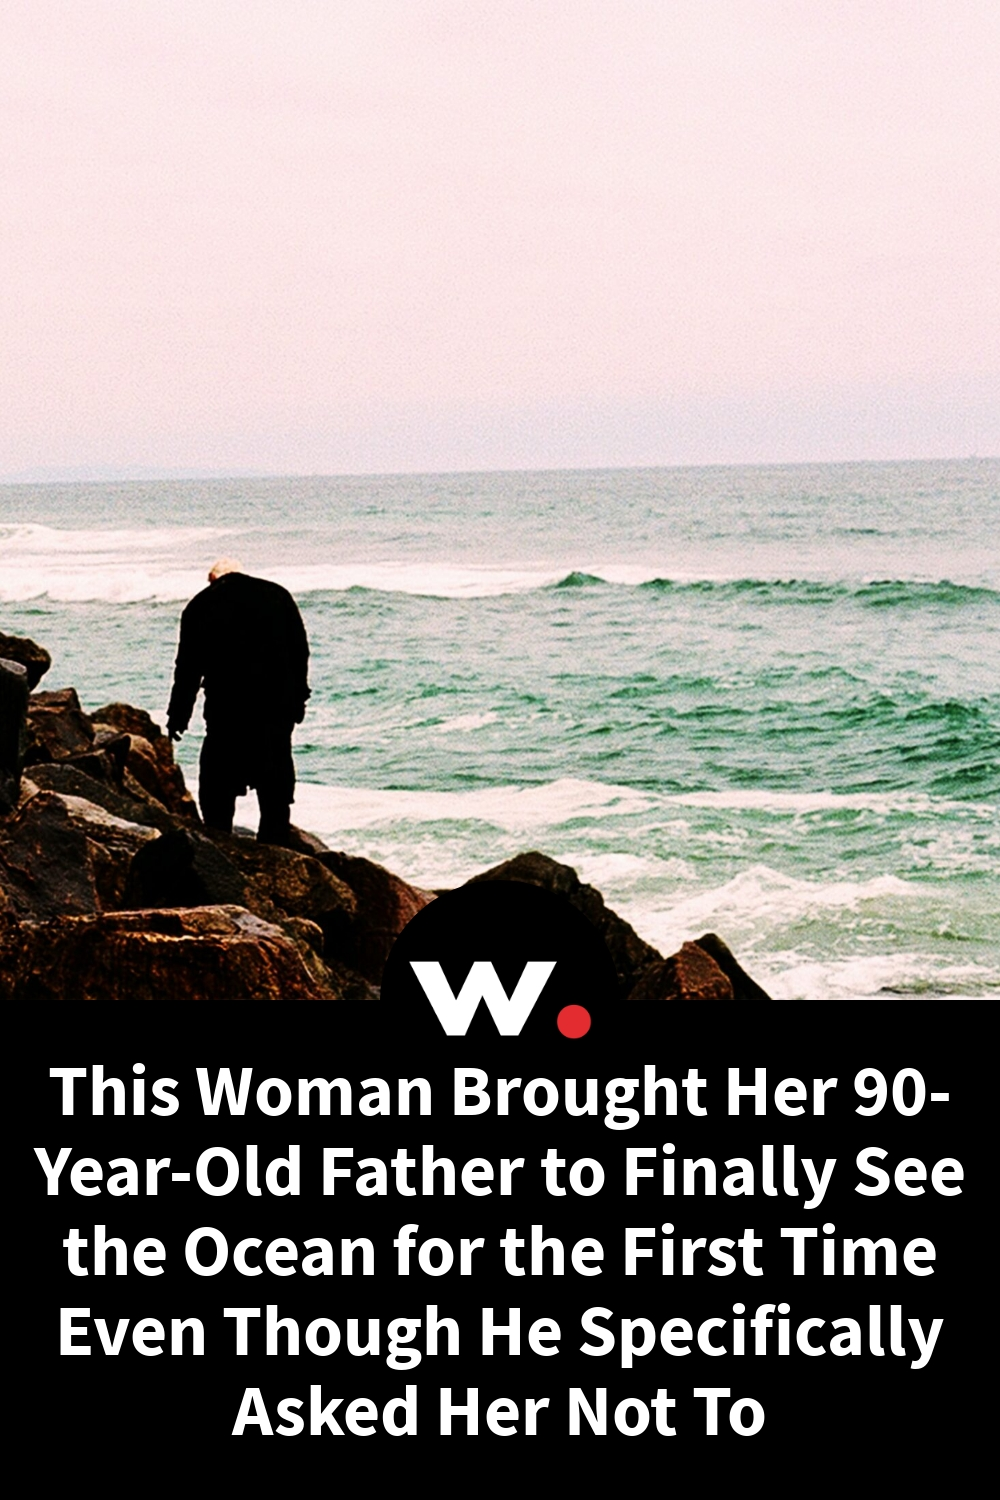 This Woman Brought Her 90-Year-Old Father to Finally See the Ocean for the First Time Even Though He Specifically Asked Her Not To